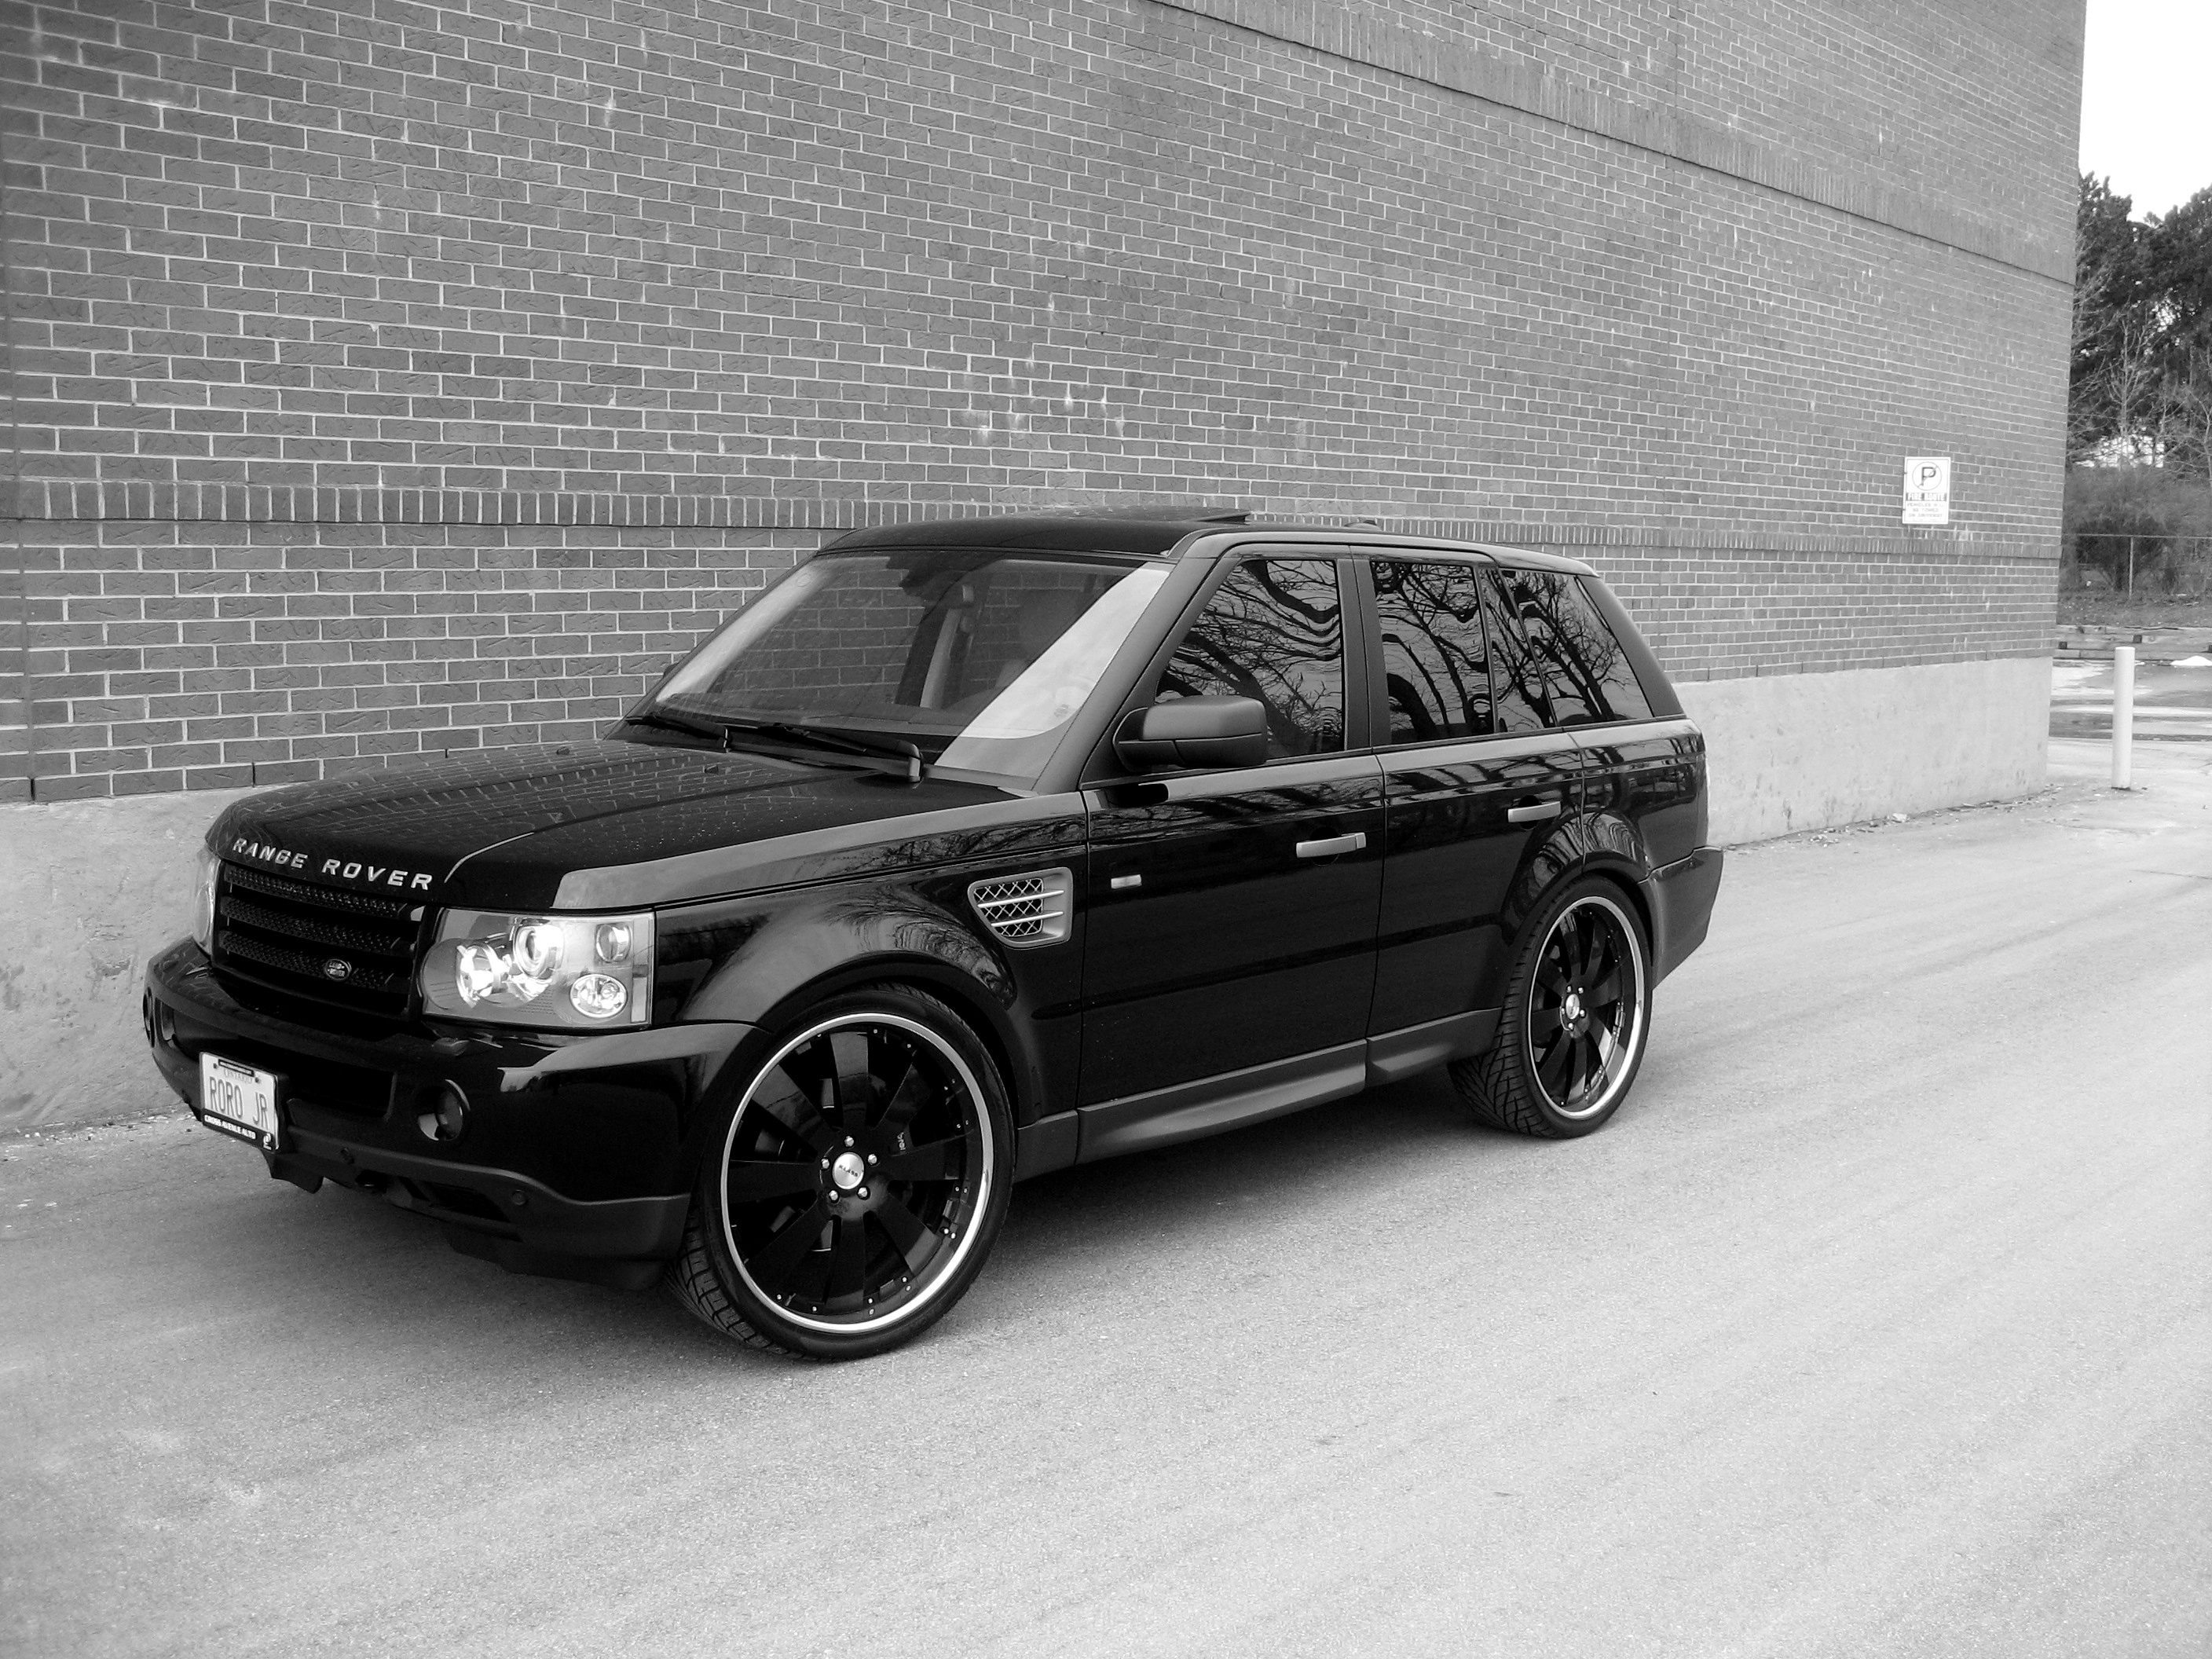 rrssc2120 2008 Land Rover Range Rover Sport s Gallery at